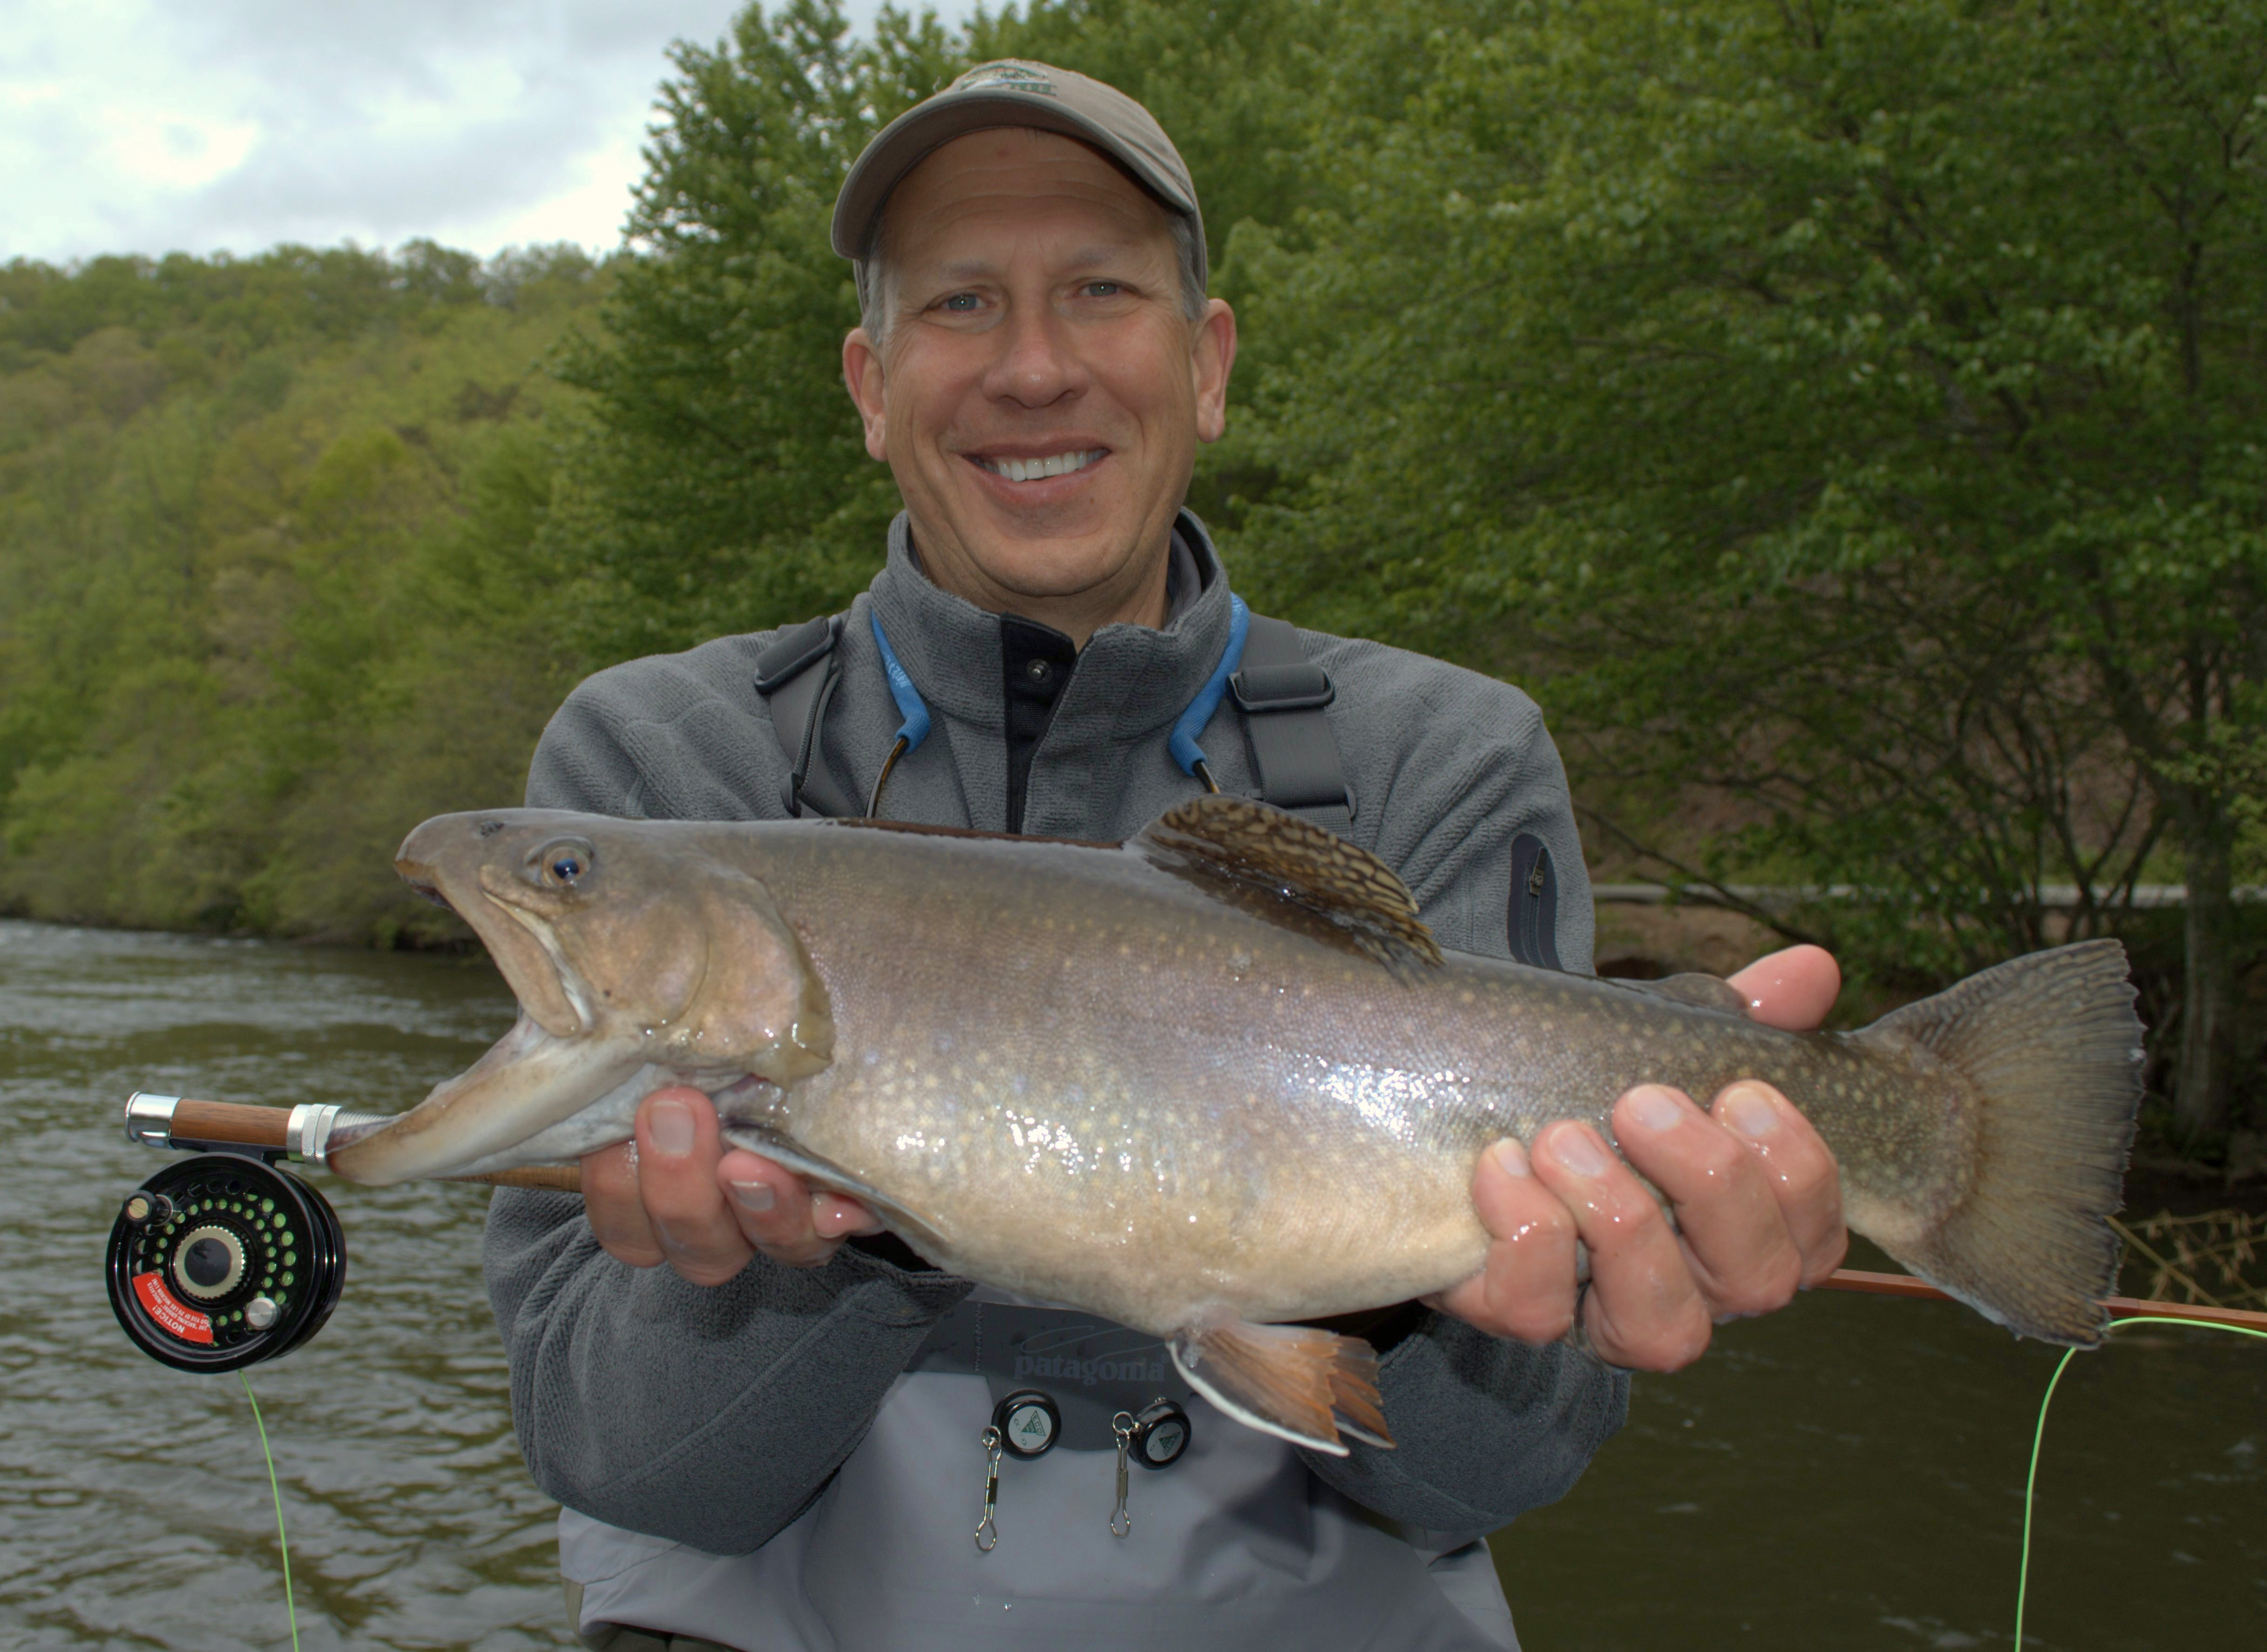 Smoky mountain trout fishing guided fly fishing trips for Tennessee trout fishing